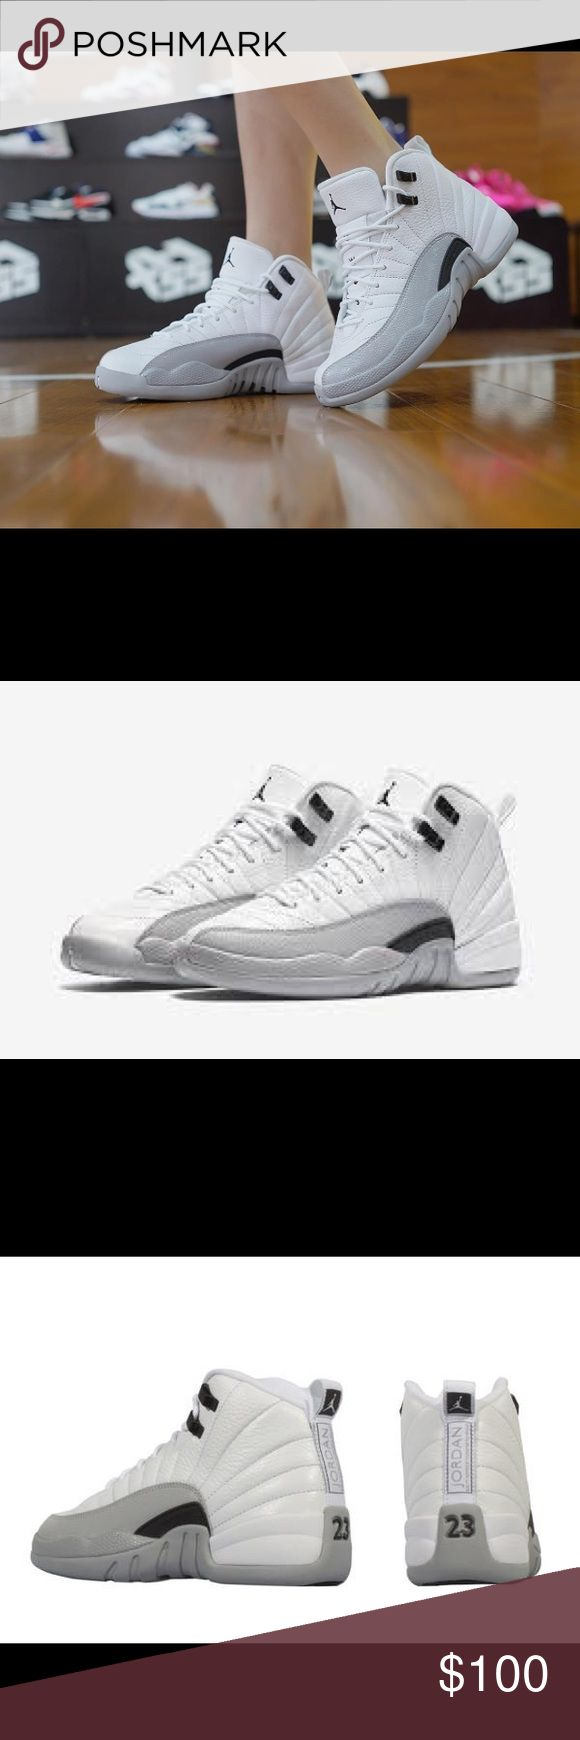 BRAND NEW W/O BOX AIR JORDAN 12 BARONS Awesome condition, not a single flaw! Tried on but never worn. Release date was Summer 2016. WHITE/BLACK/WOLF GREY.  ------------- $80 via 🅿️...🅿️... & I SHIP IMMEDIATELY 😘 Nike Shoes Sneakers